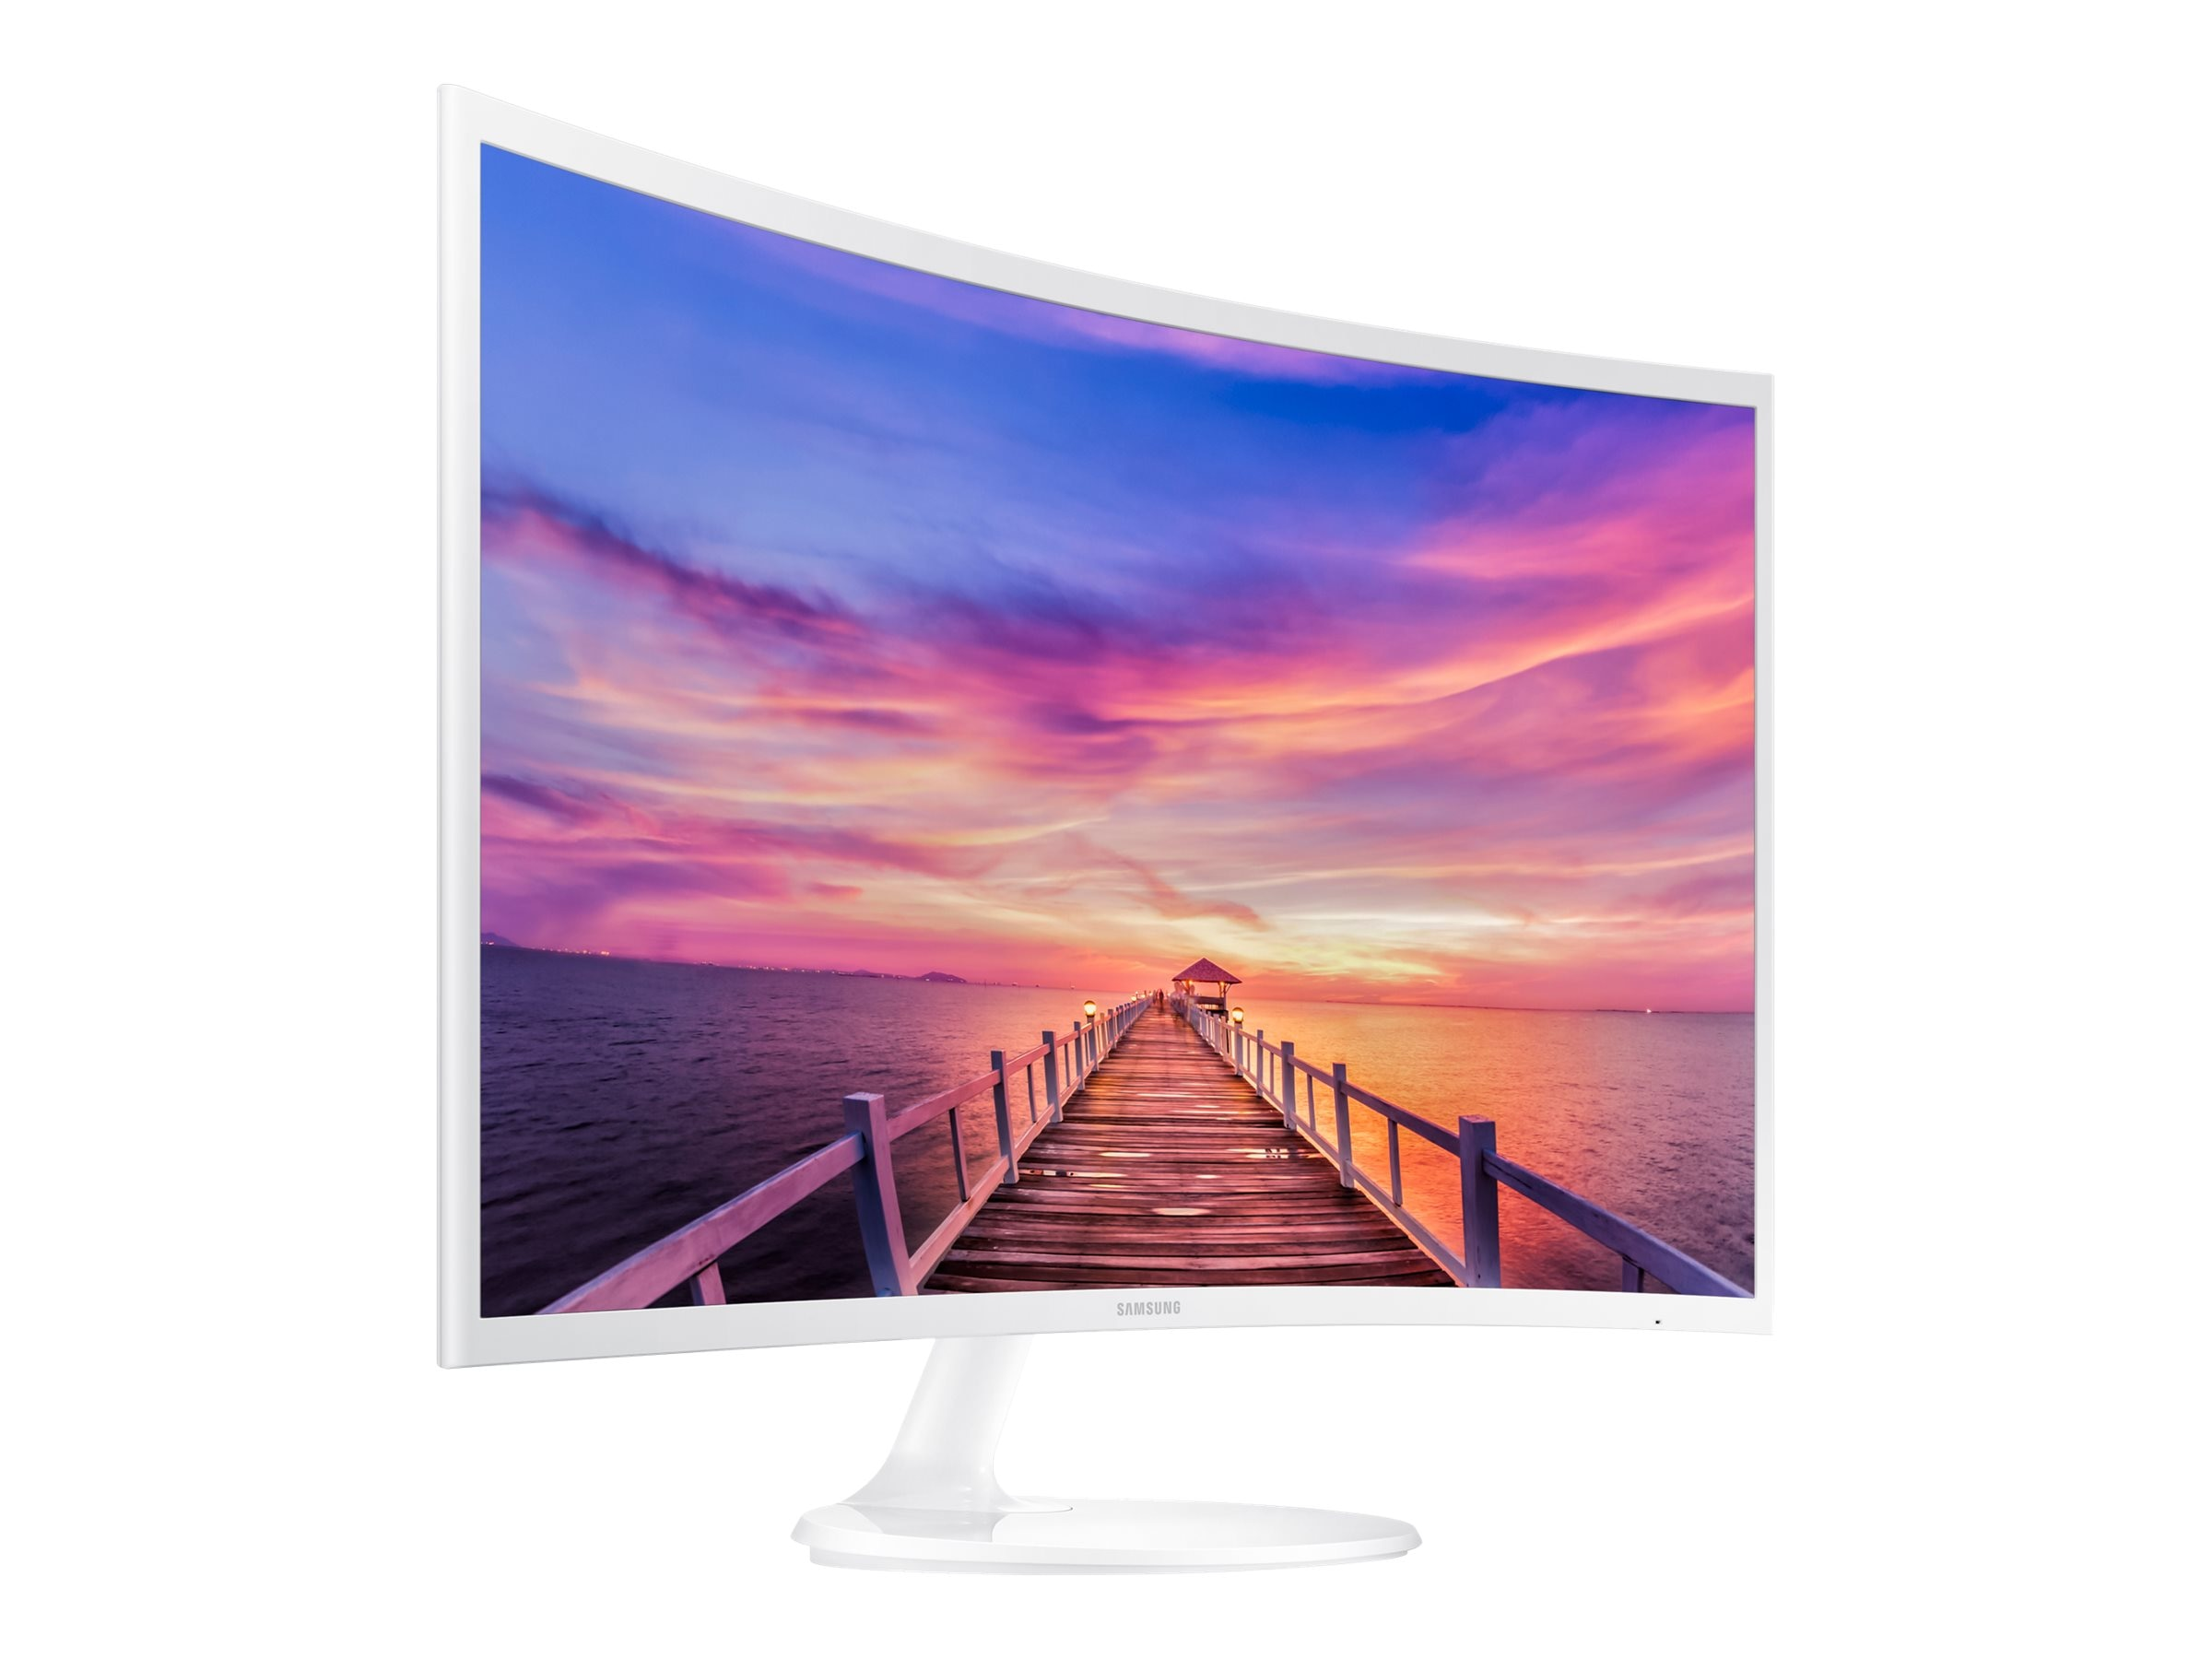 Samsung 32 CF391 Full HD LED Curved Monitor, White, LC32F391FWNXZA